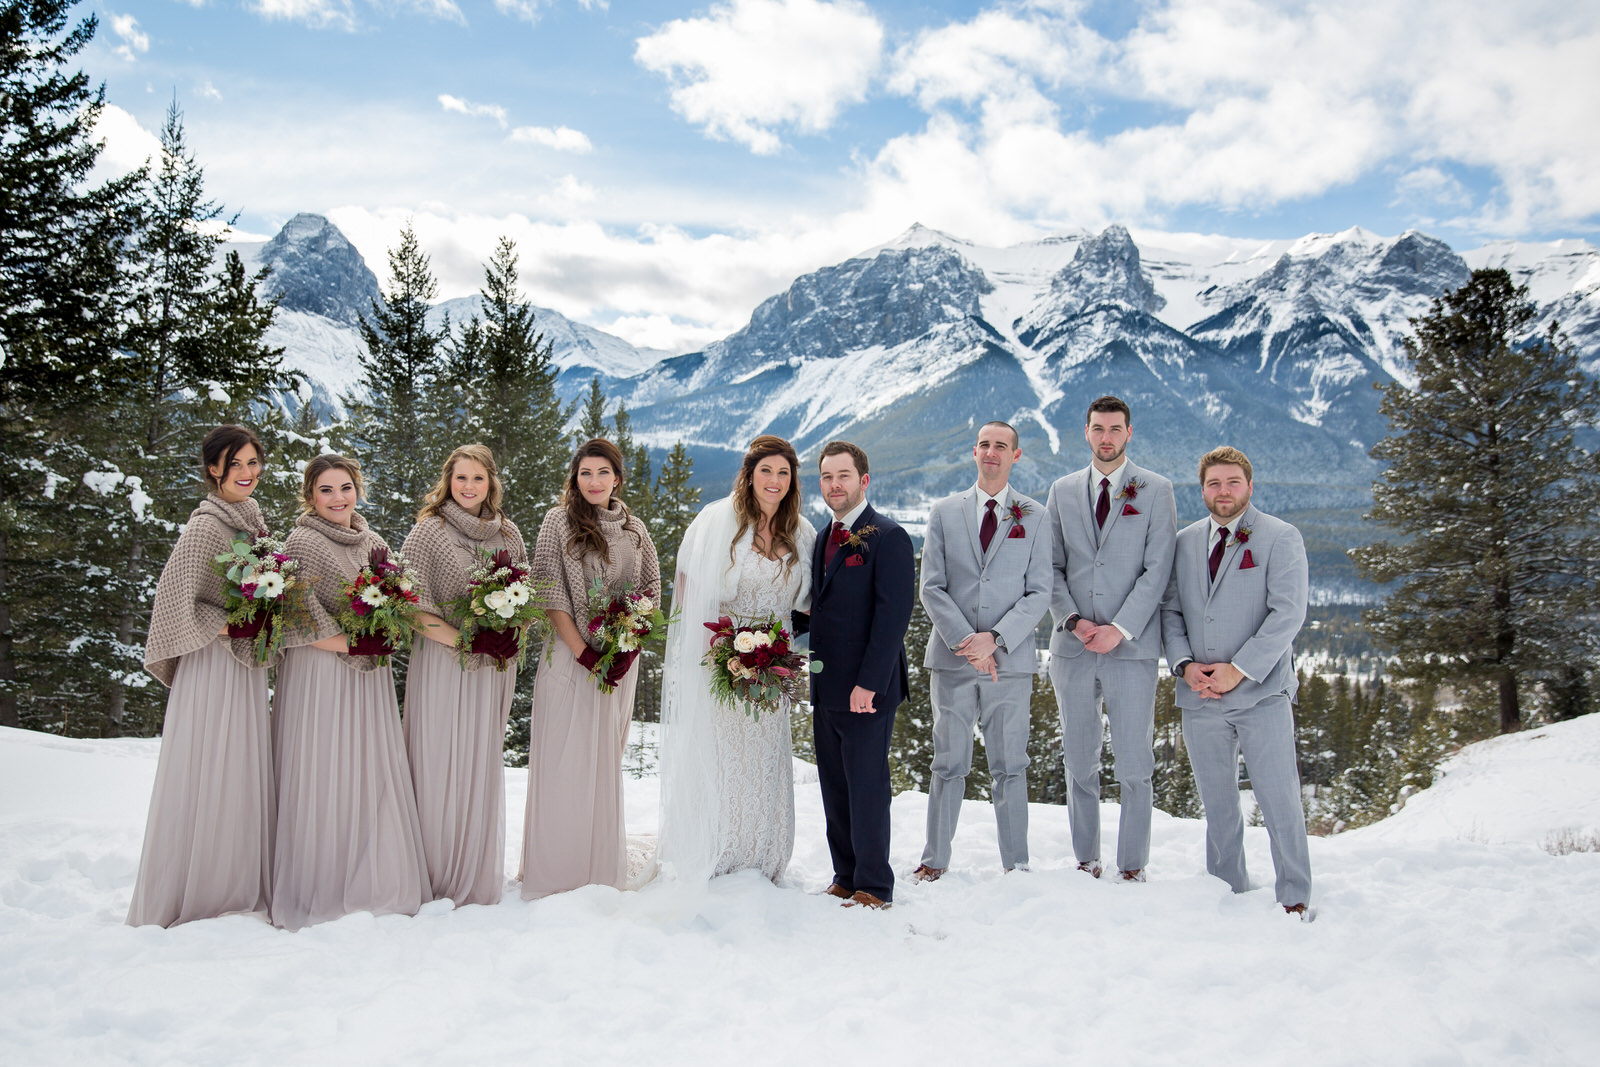 Winter wedding photos by gazebo at Silvertip Resort in Canmore, AB.